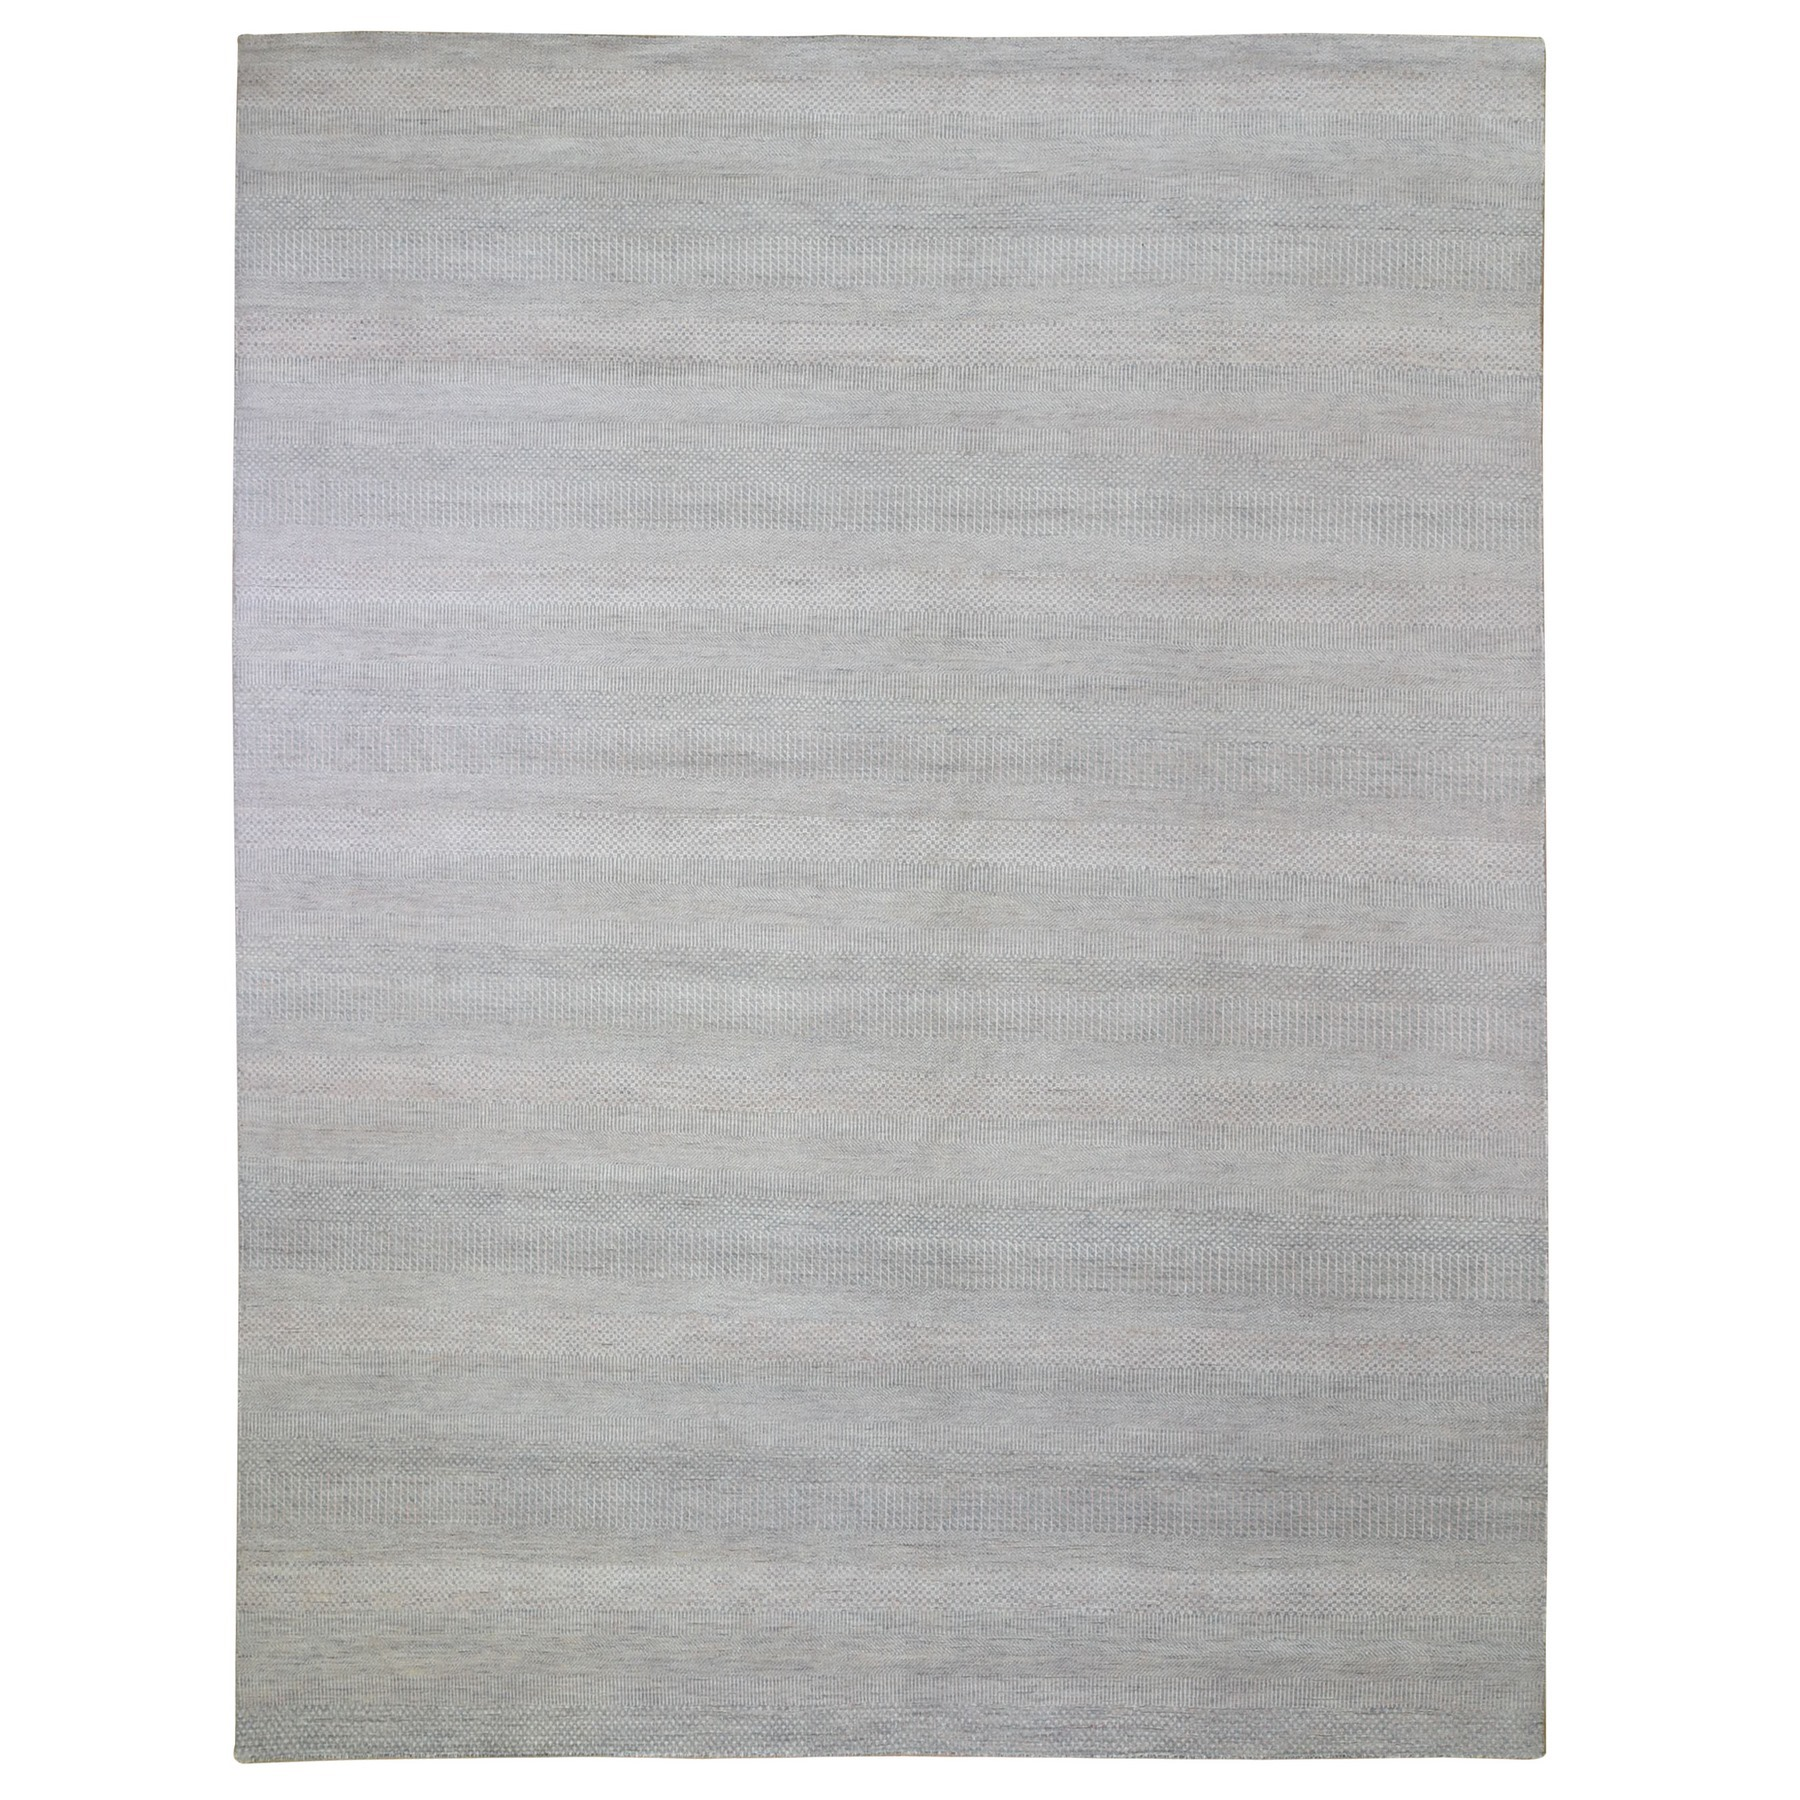 "9'x11'7"" Gray with Touches of Peach Grass Design Wool and Silk Hand Knotted Oriental Rug"